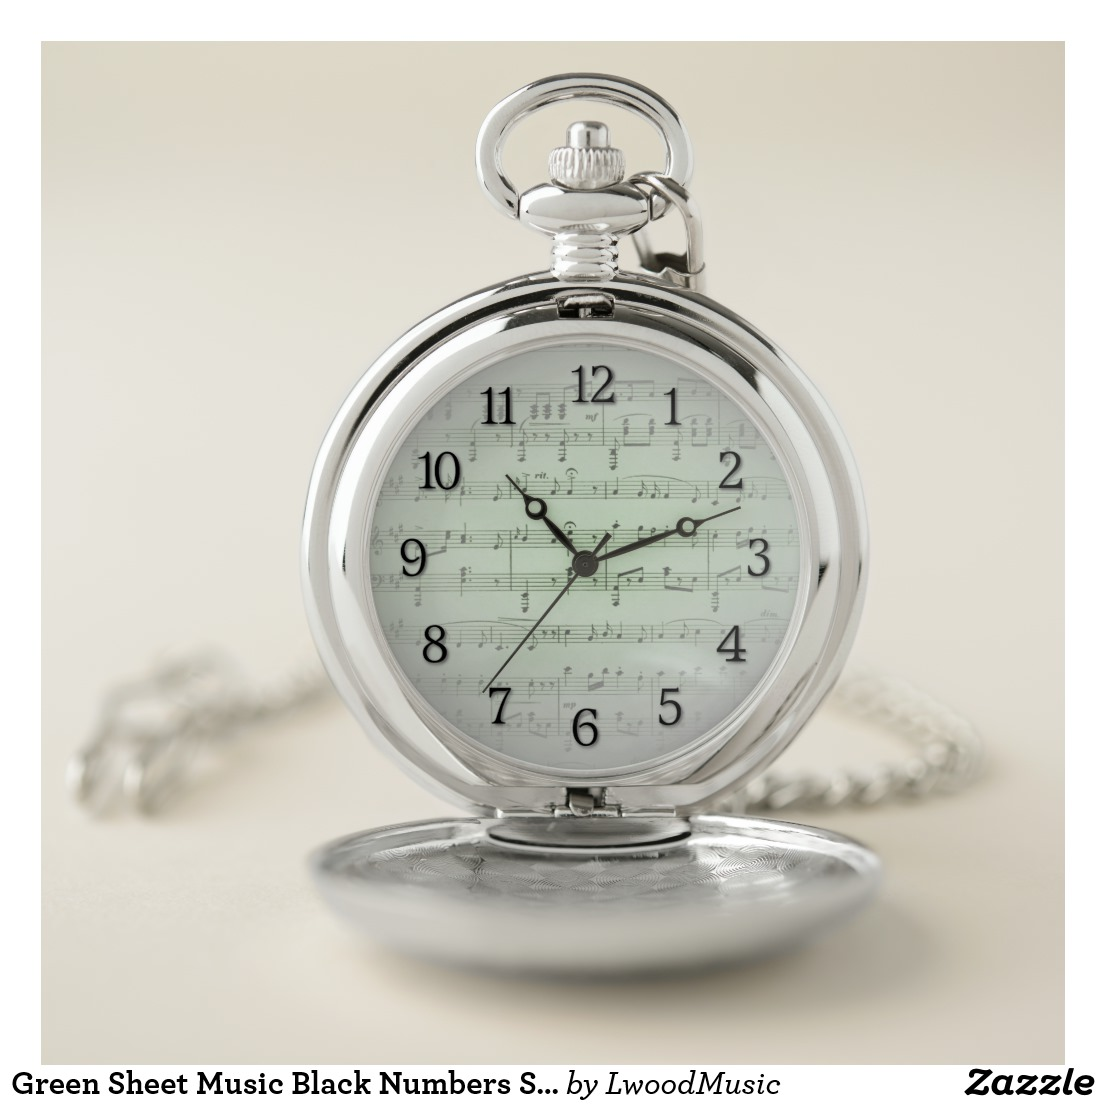 Green Sheet Music Black Numbers Silver Pocket Watch